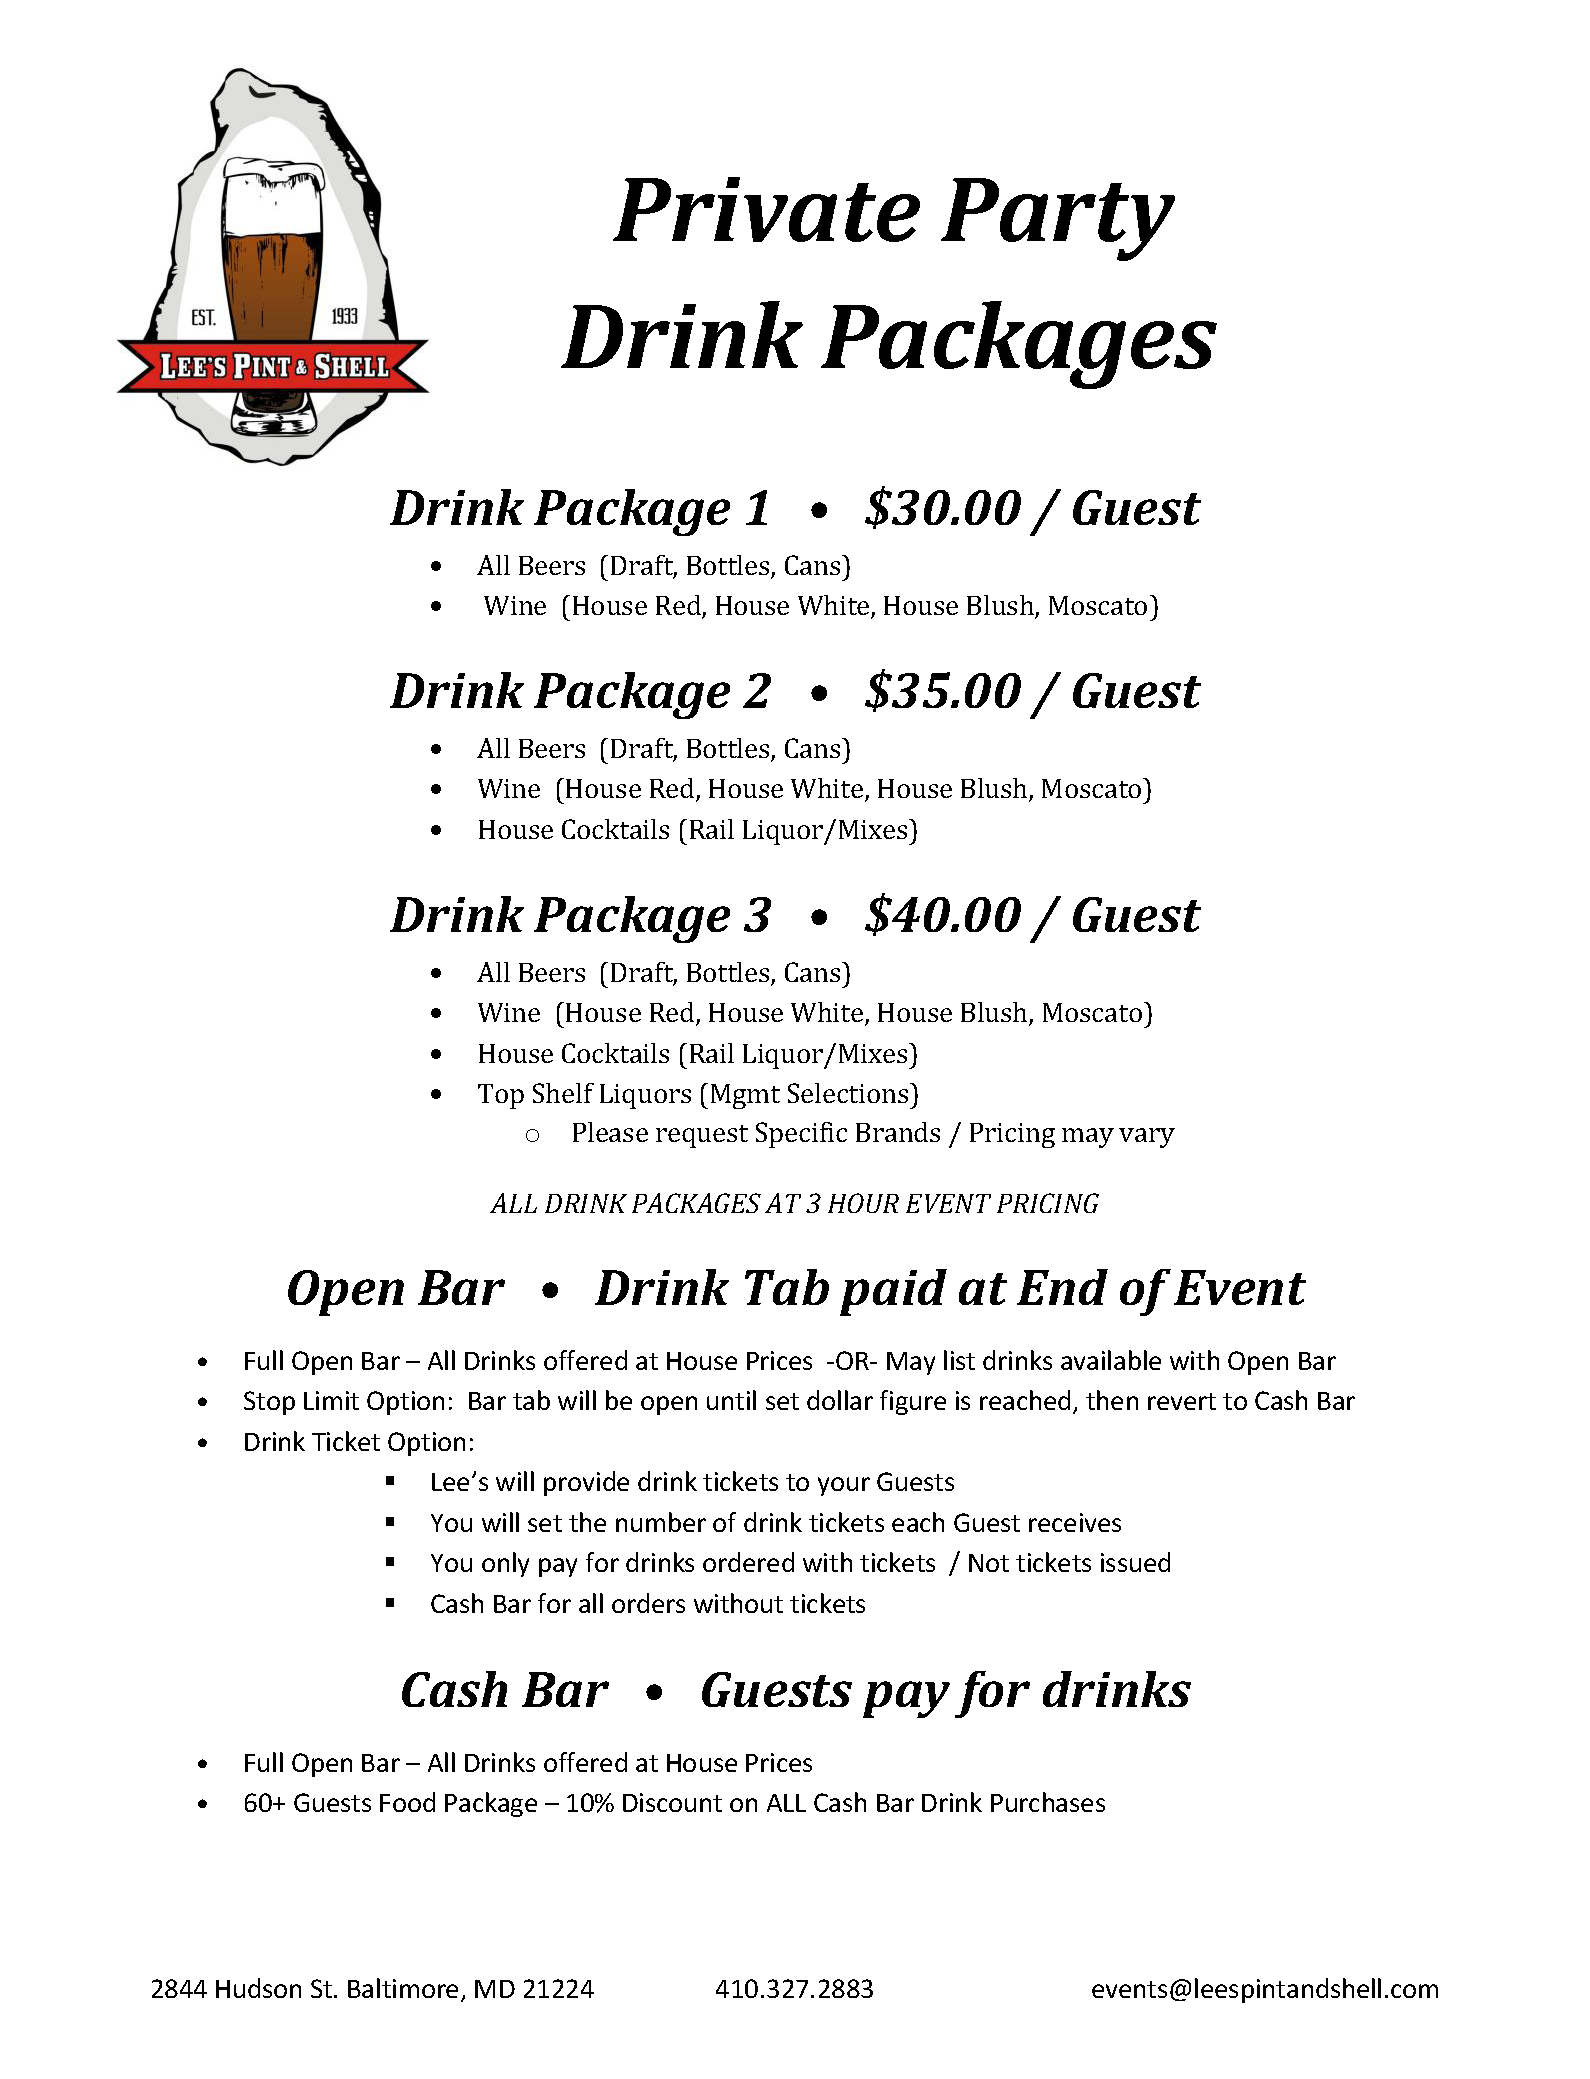 Private Party Drink Packages.png